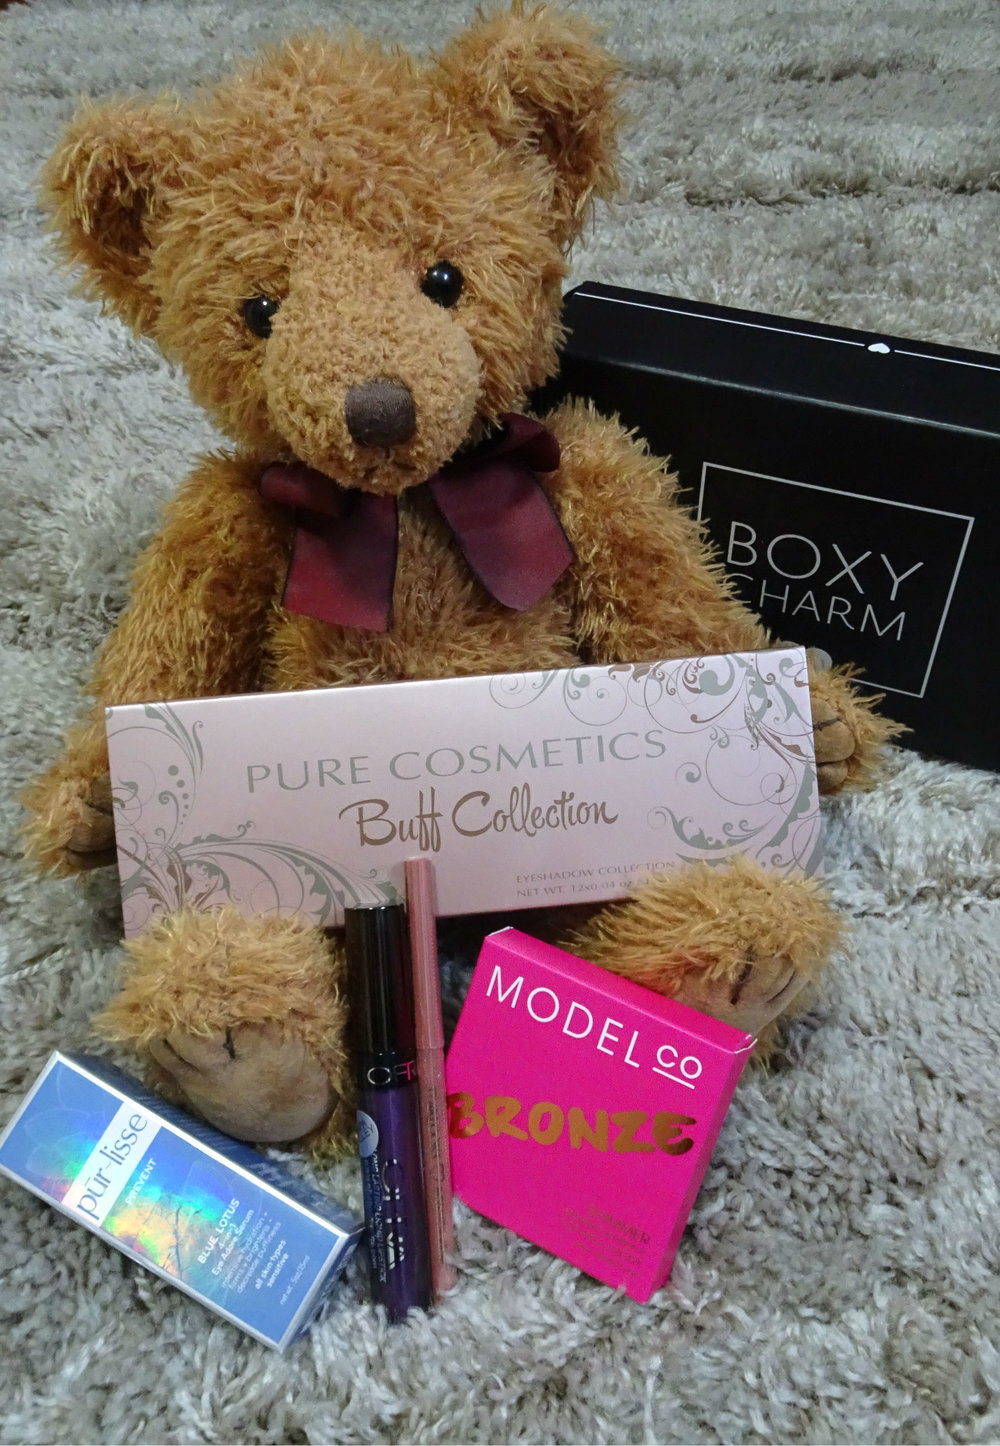 Teddy showing off my December Boxycharm contents